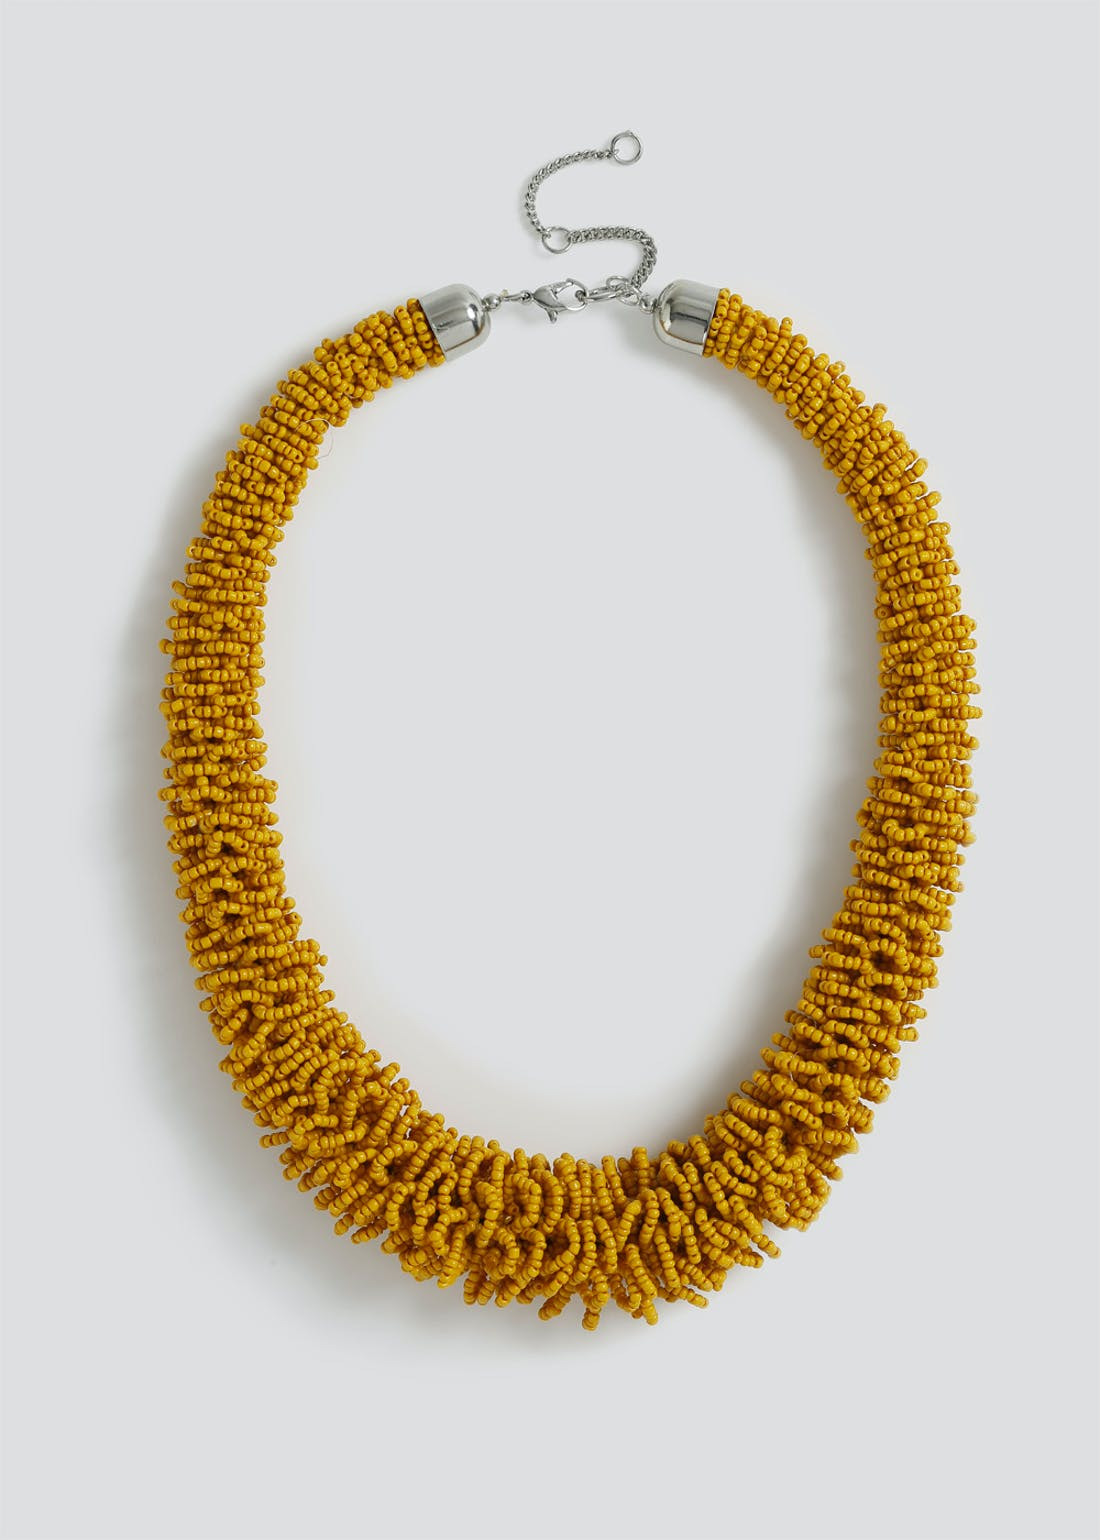 Frazzle Rope Necklace